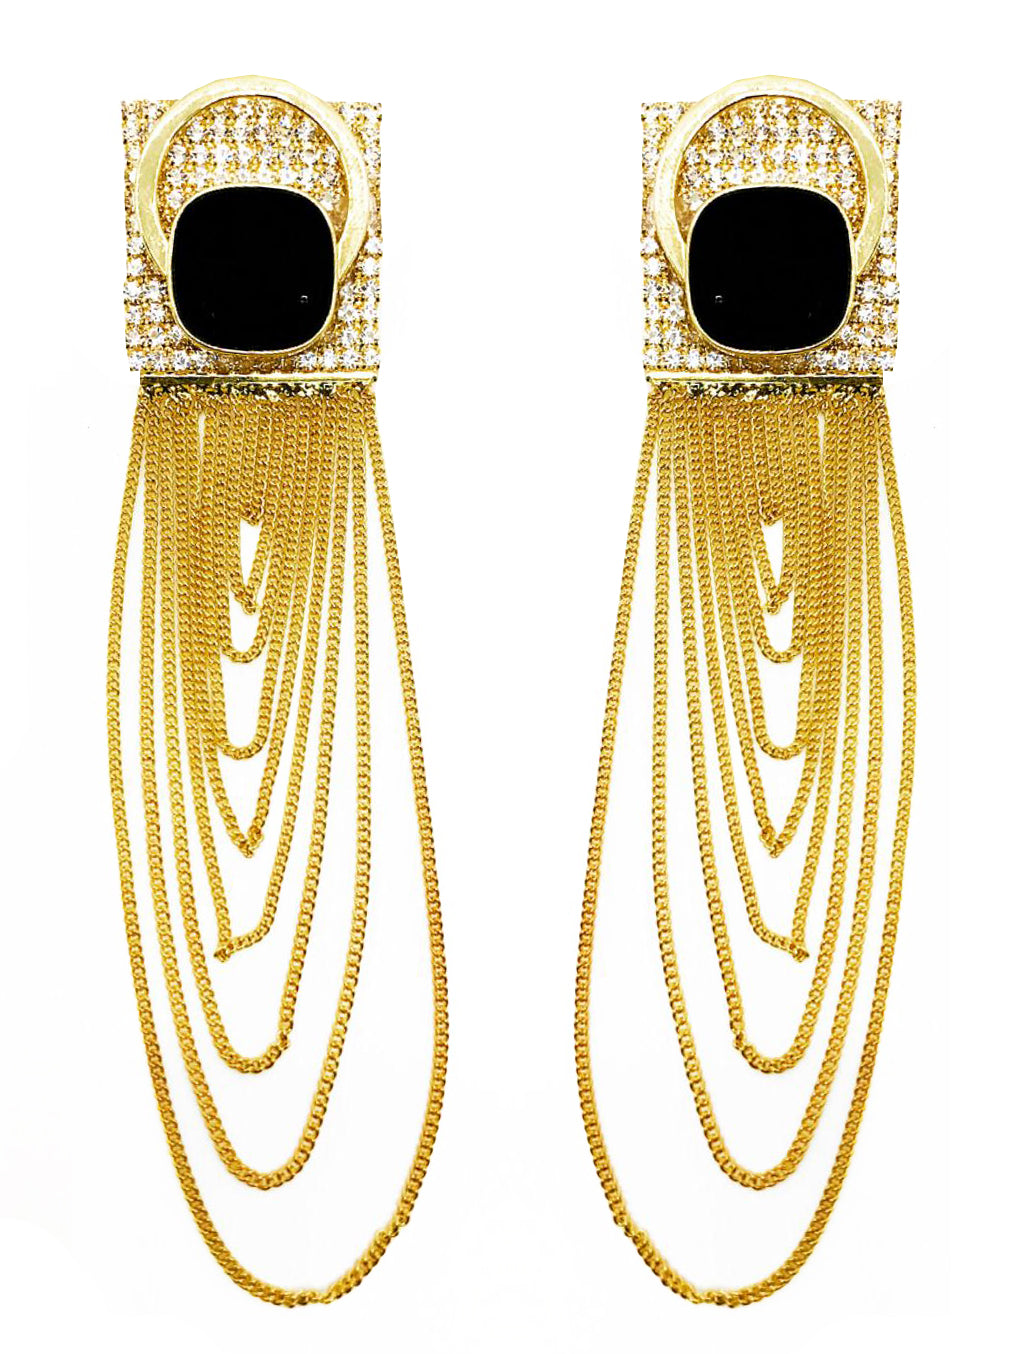 GOLD FRINGE CHAINS WITH GLASSCRYSTAL EARRINGS